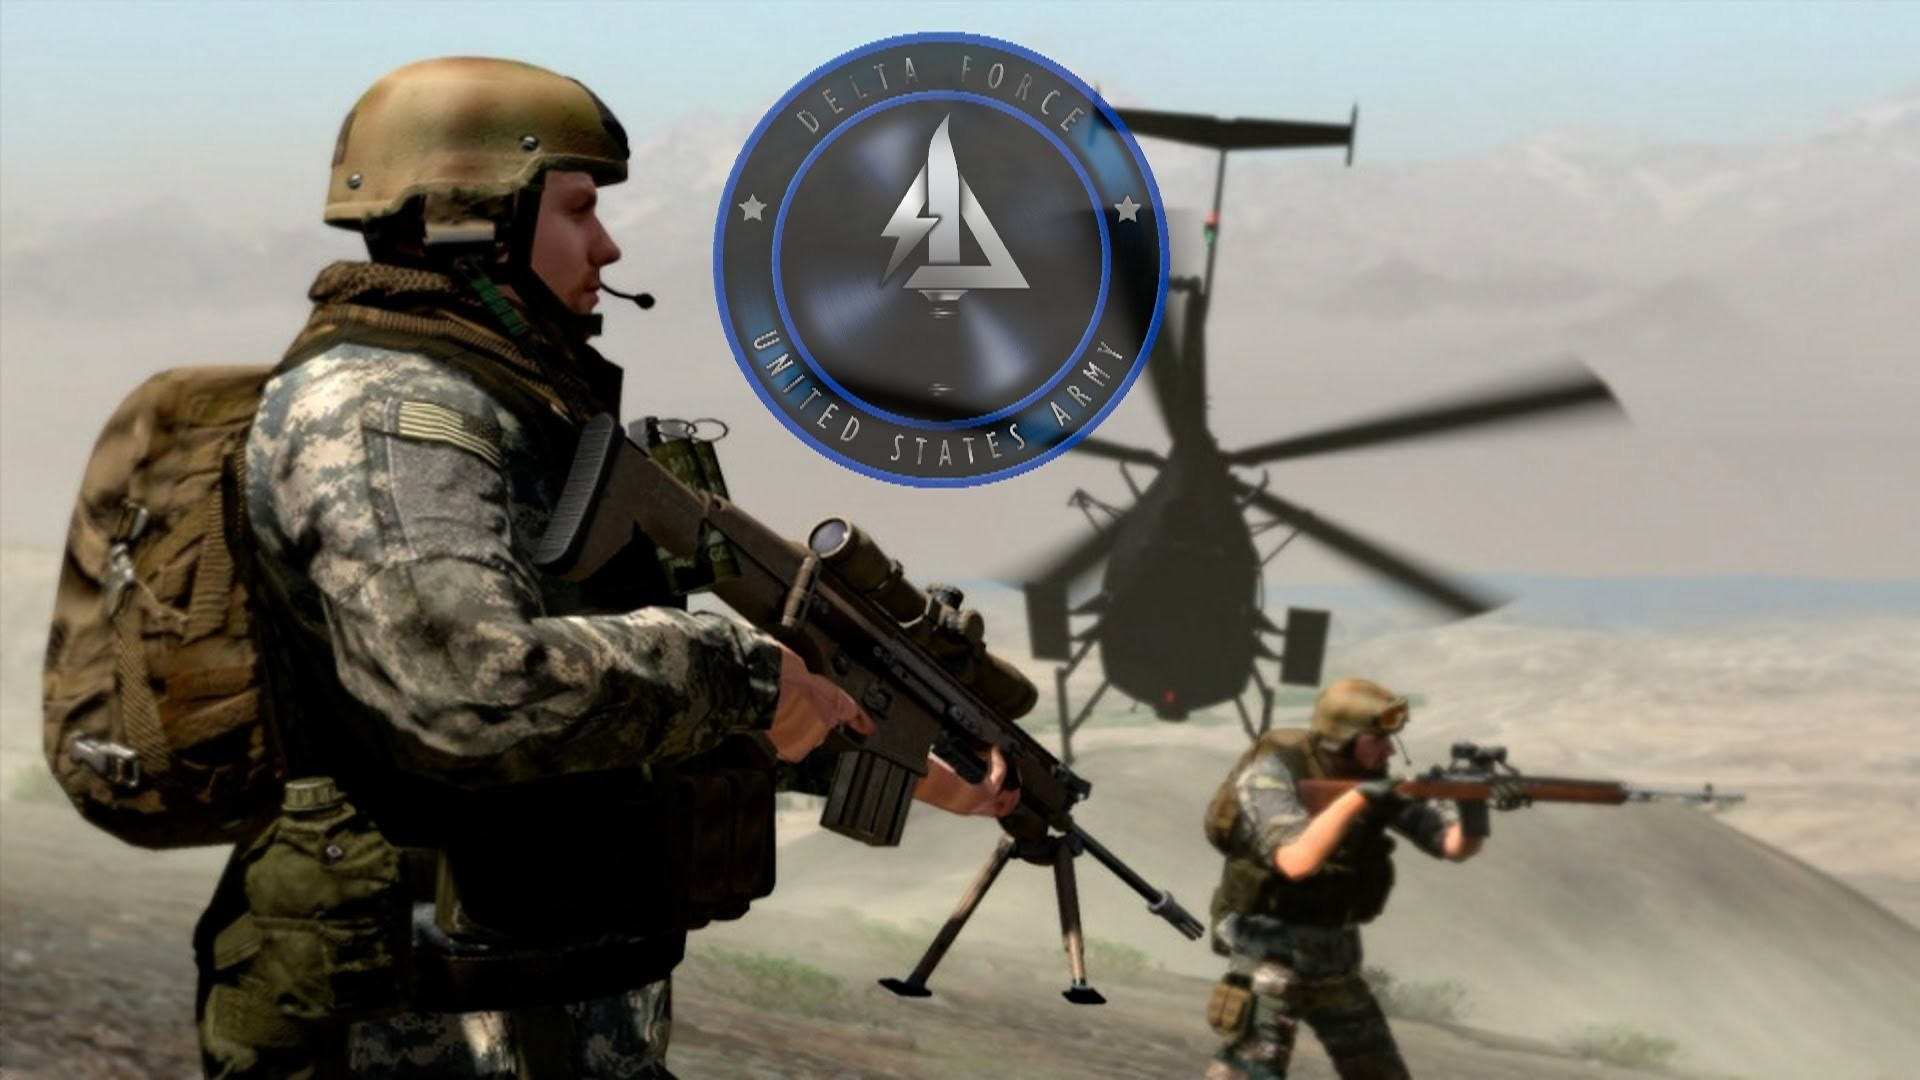 1920x1080 U.S Army Delta Force | Arma 2 - 'Liberating Imerat' Mission (WIP) - YouTube